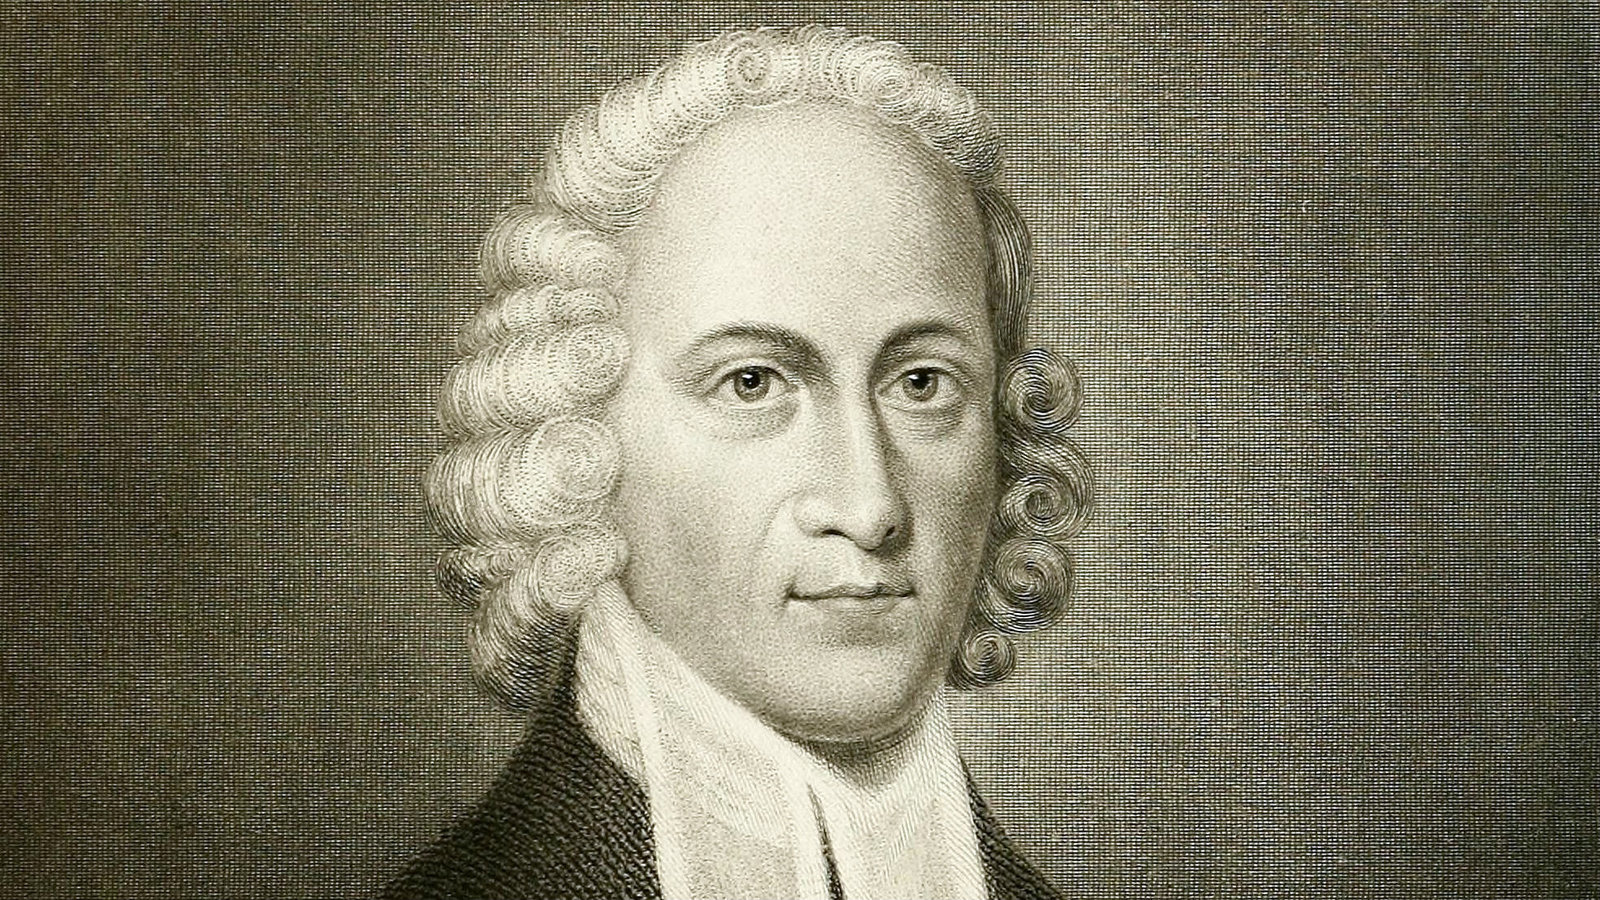 johnathon edwards Jonathan edwards was one of the most significant religious thinkers in american history born october 5, 1703, in east windsor, connecticut colony, edwards was a.